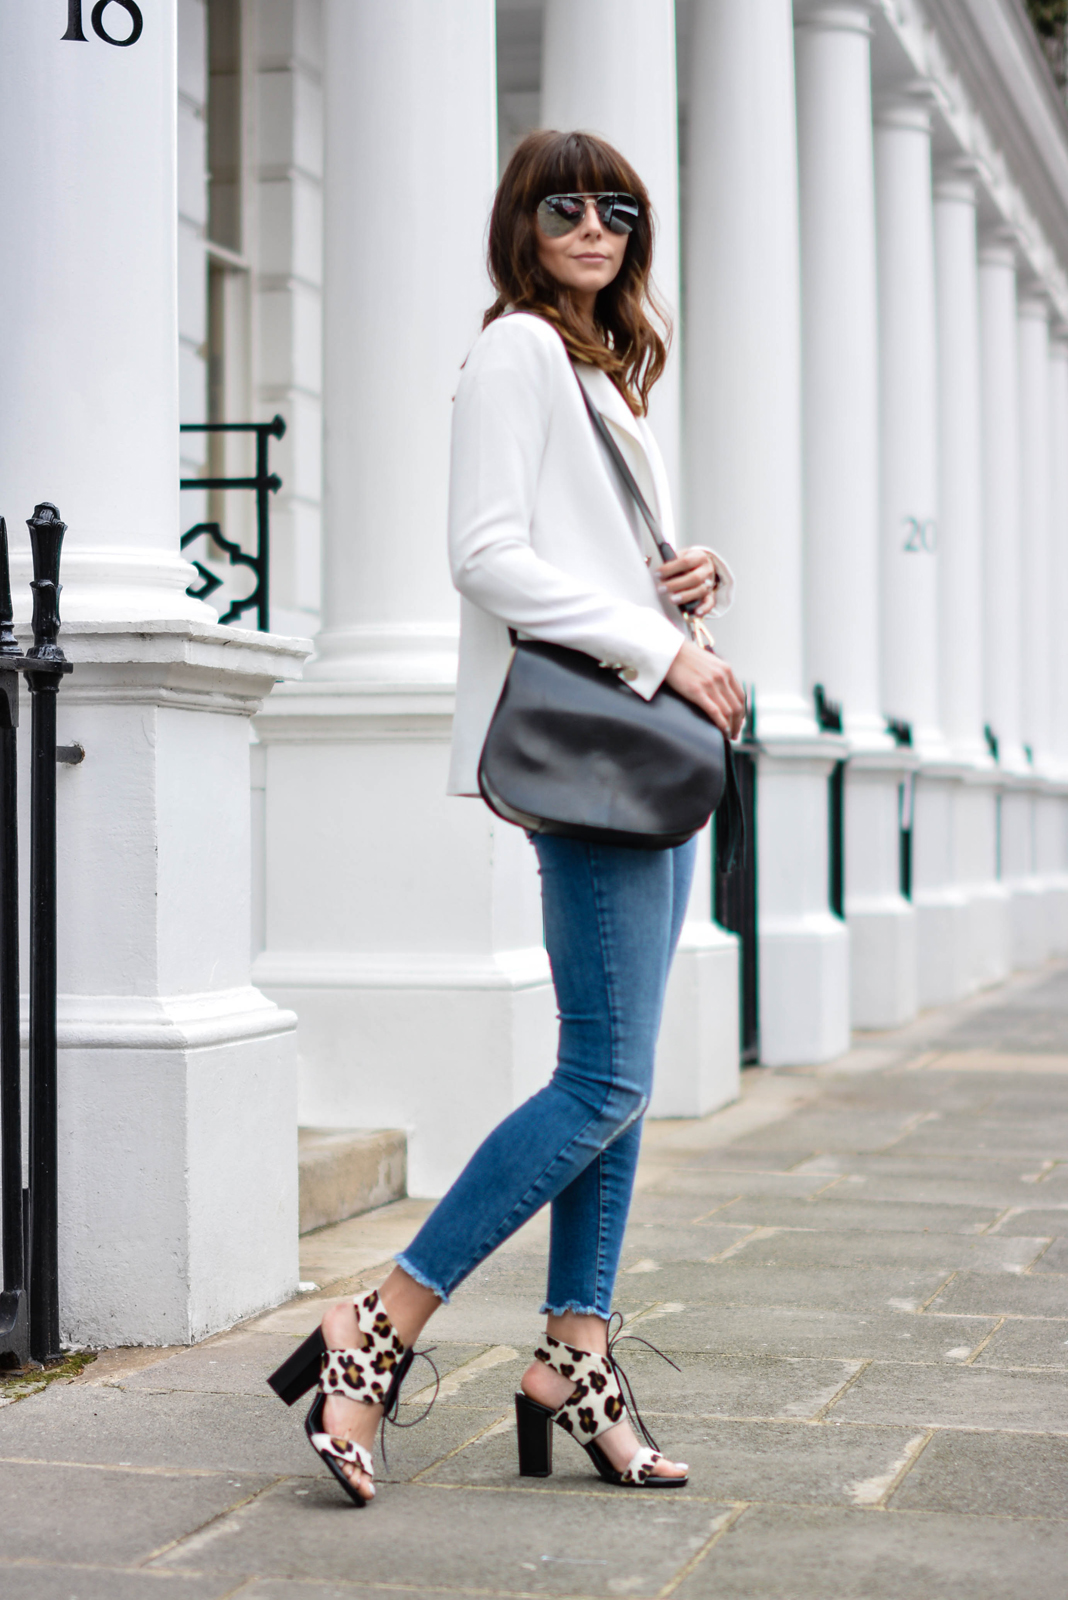 EJSTYLE - Emma Hill, Forever 21 white blazer, River Island ankle grazer skinny jeans, Sante shoes leopard lace up sandals, River Island Black saddle tassle bag